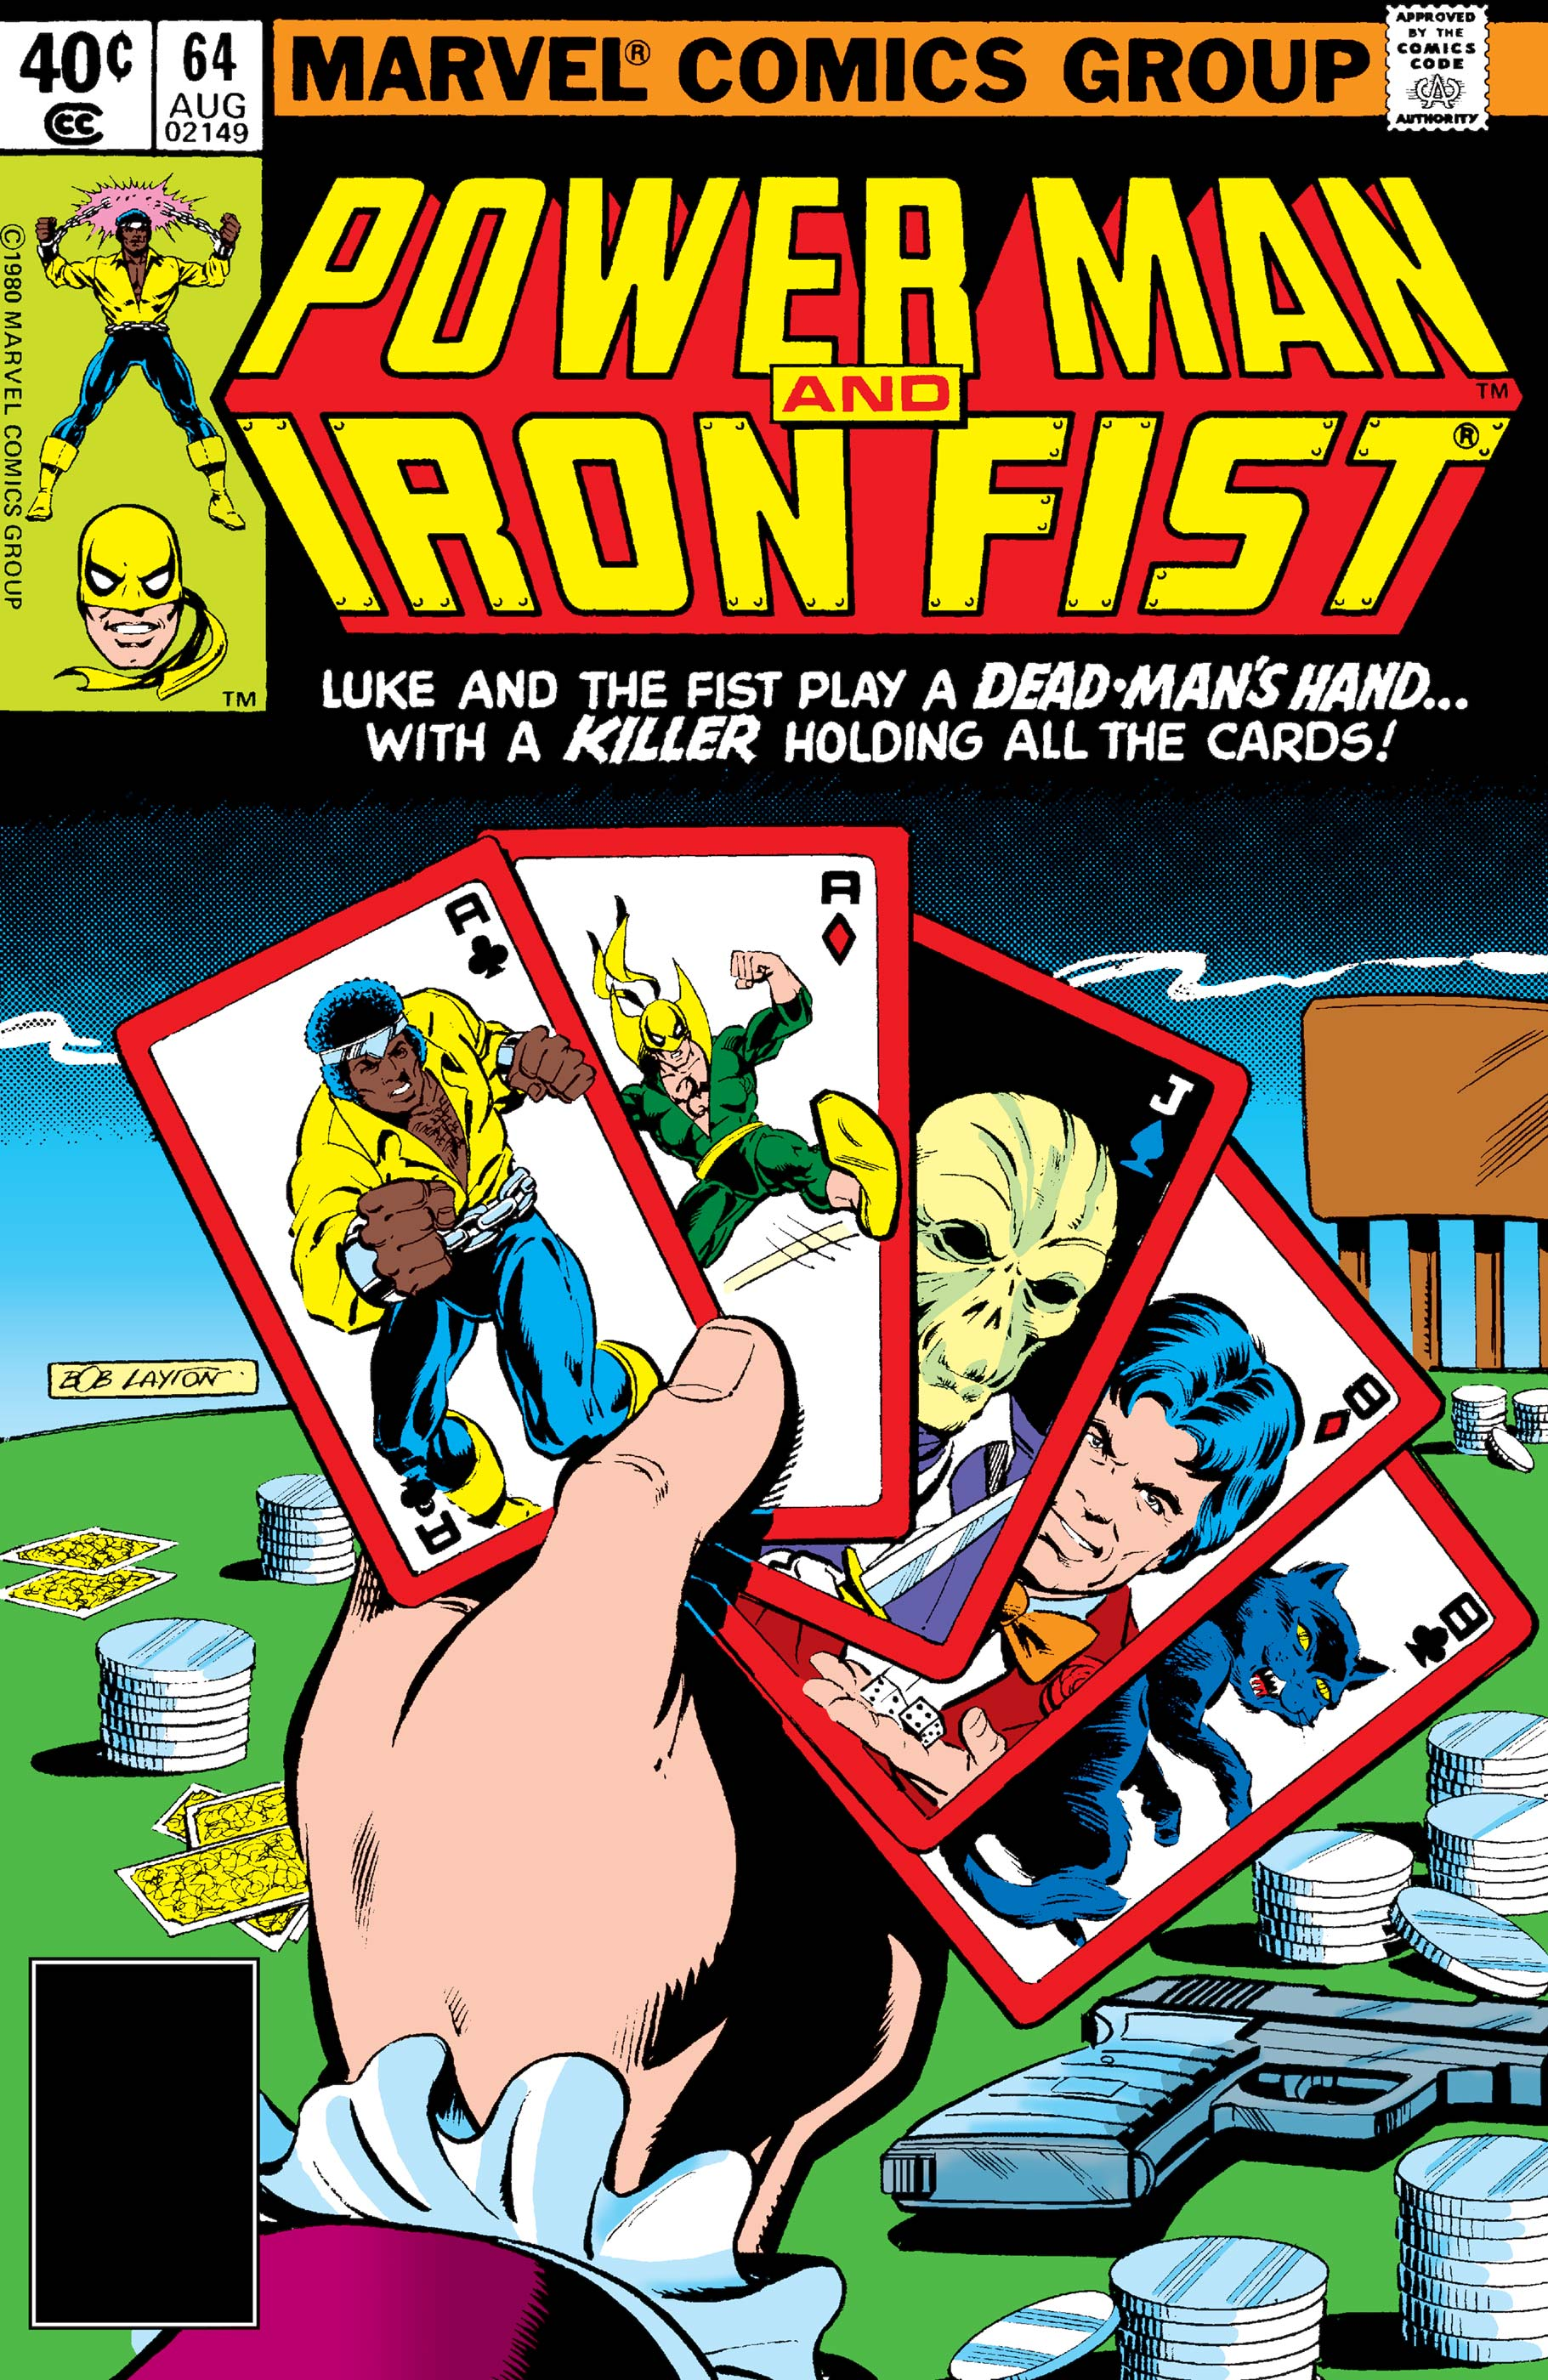 Power Man and Iron Fist (1978) #64